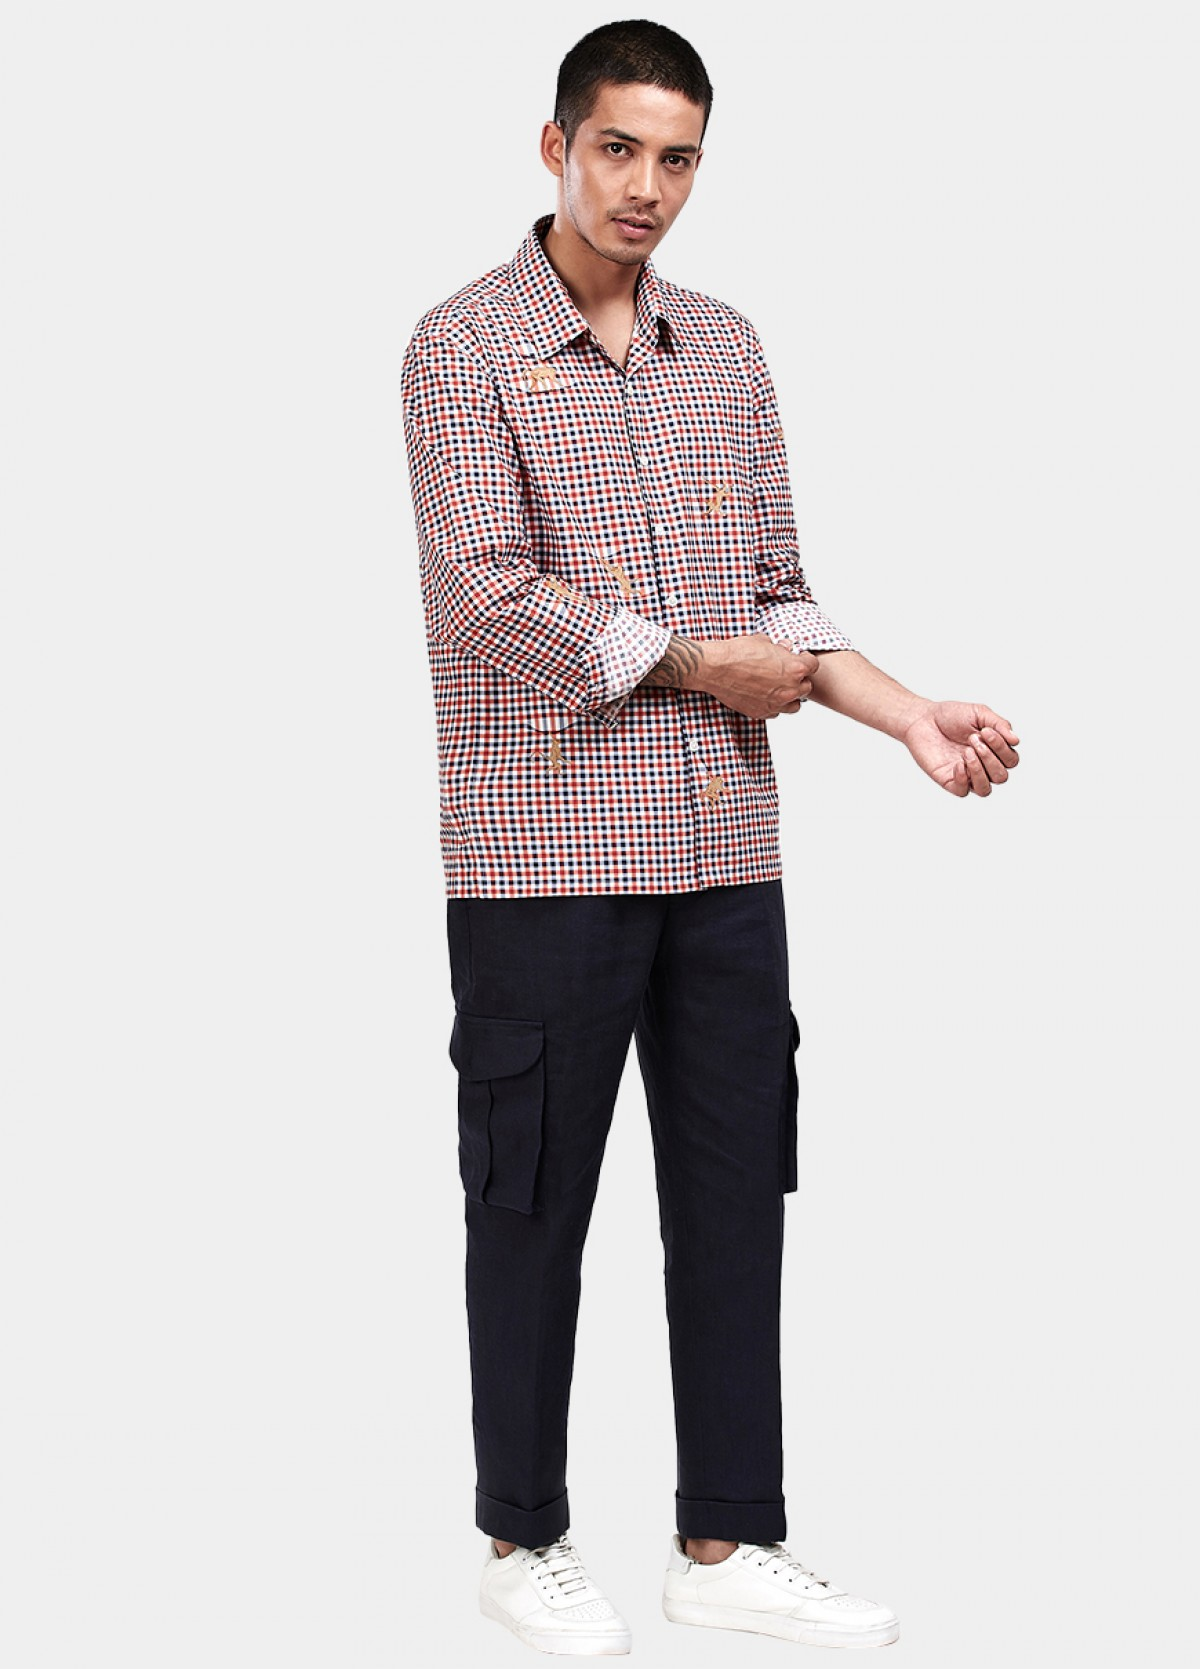 The Chequered Past Shirt